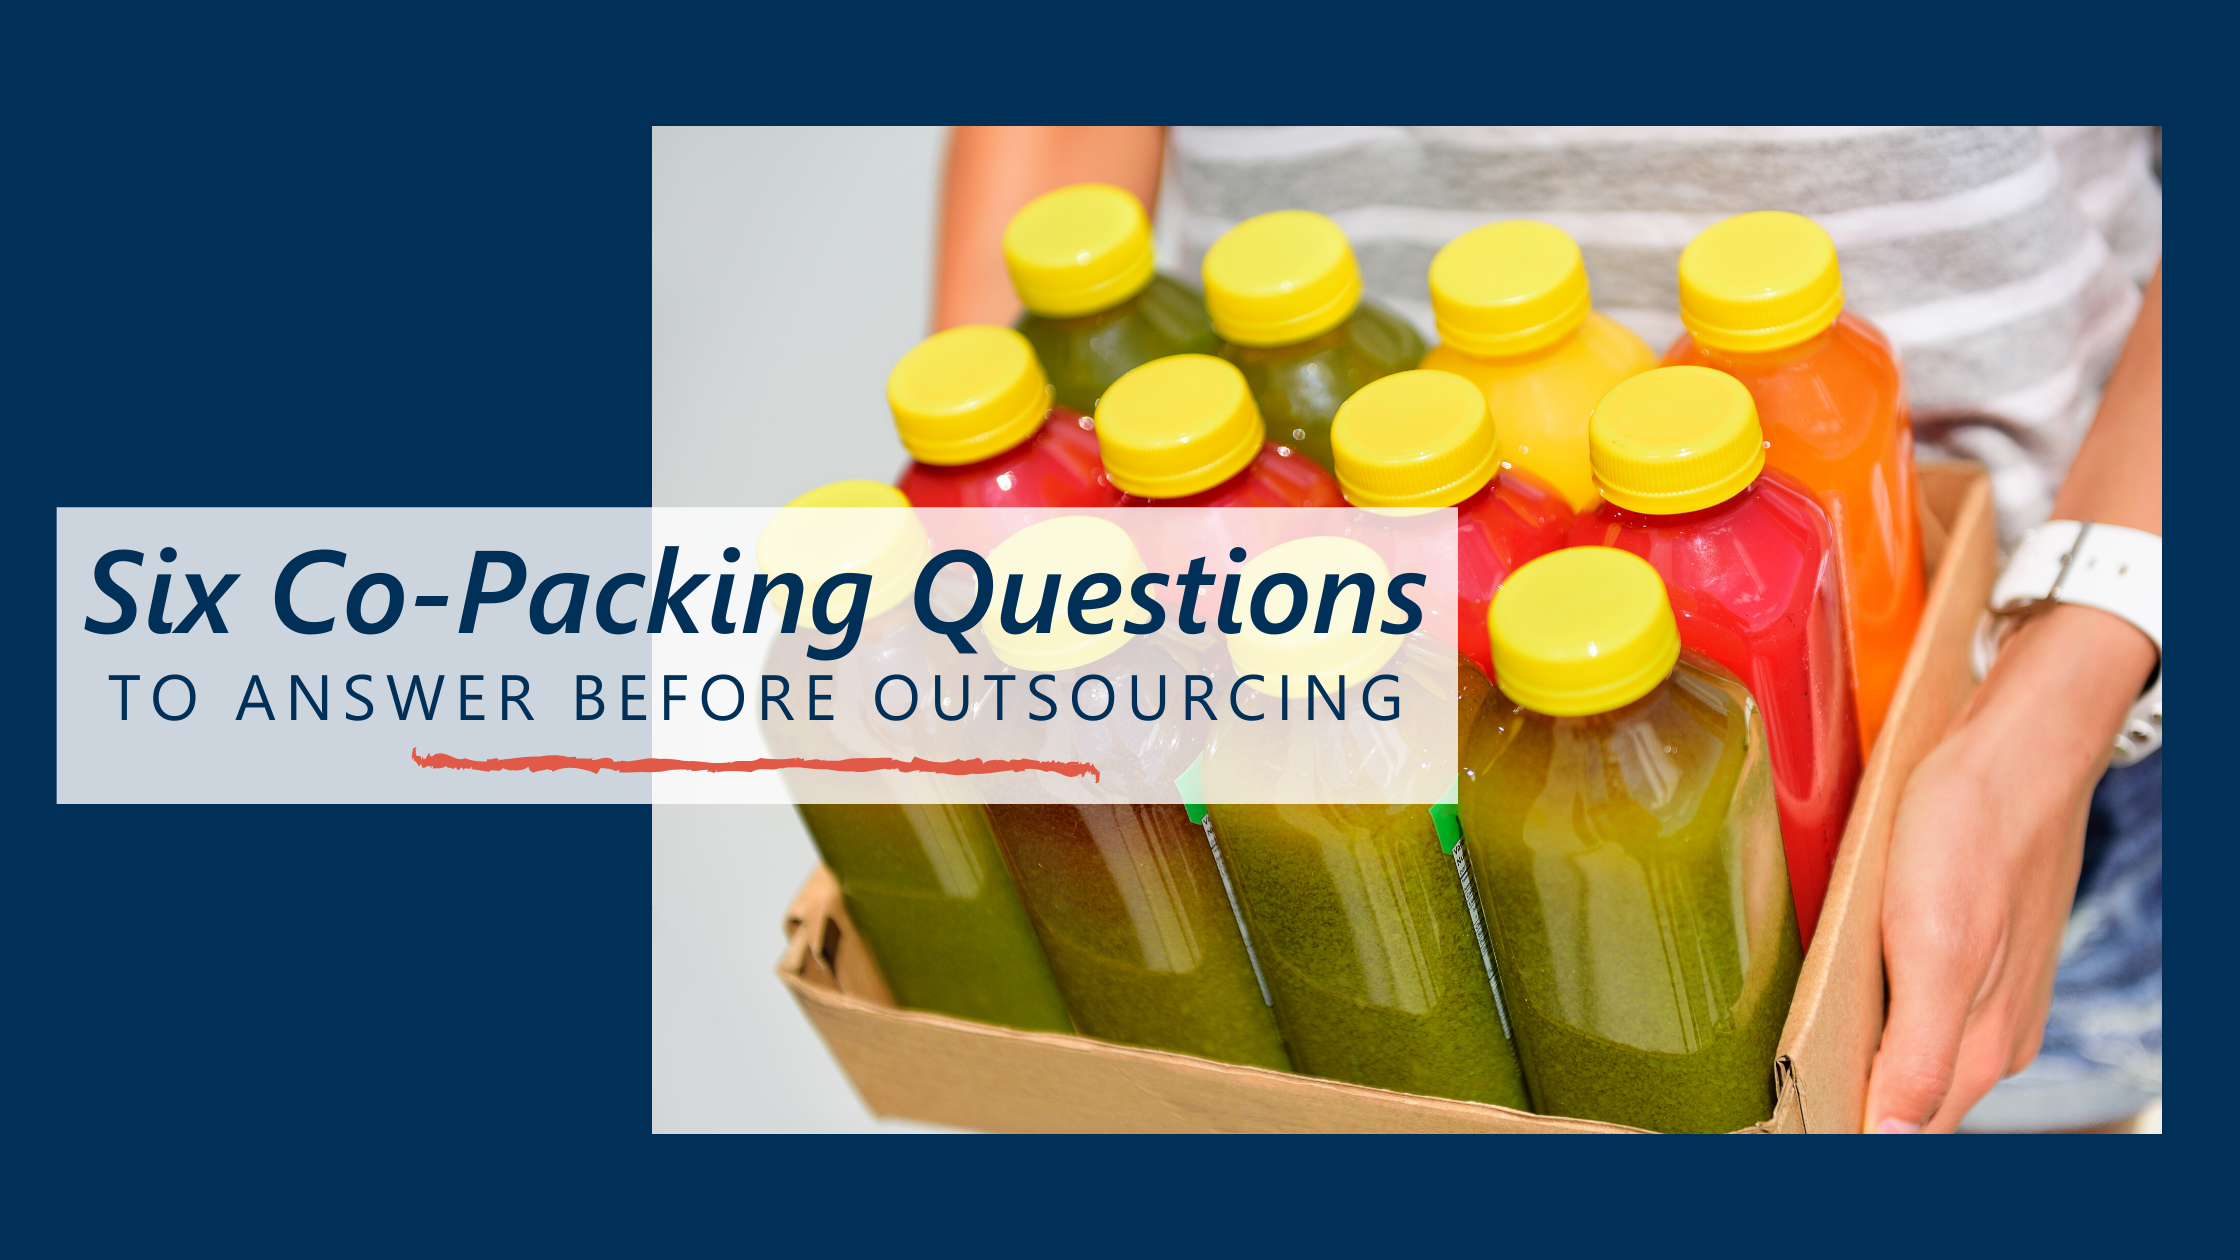 Six-Co-Packing-Questions-To-Ask-Before-Outsourcing-green-red-orange-drink-bottles-in-cardboard-carton